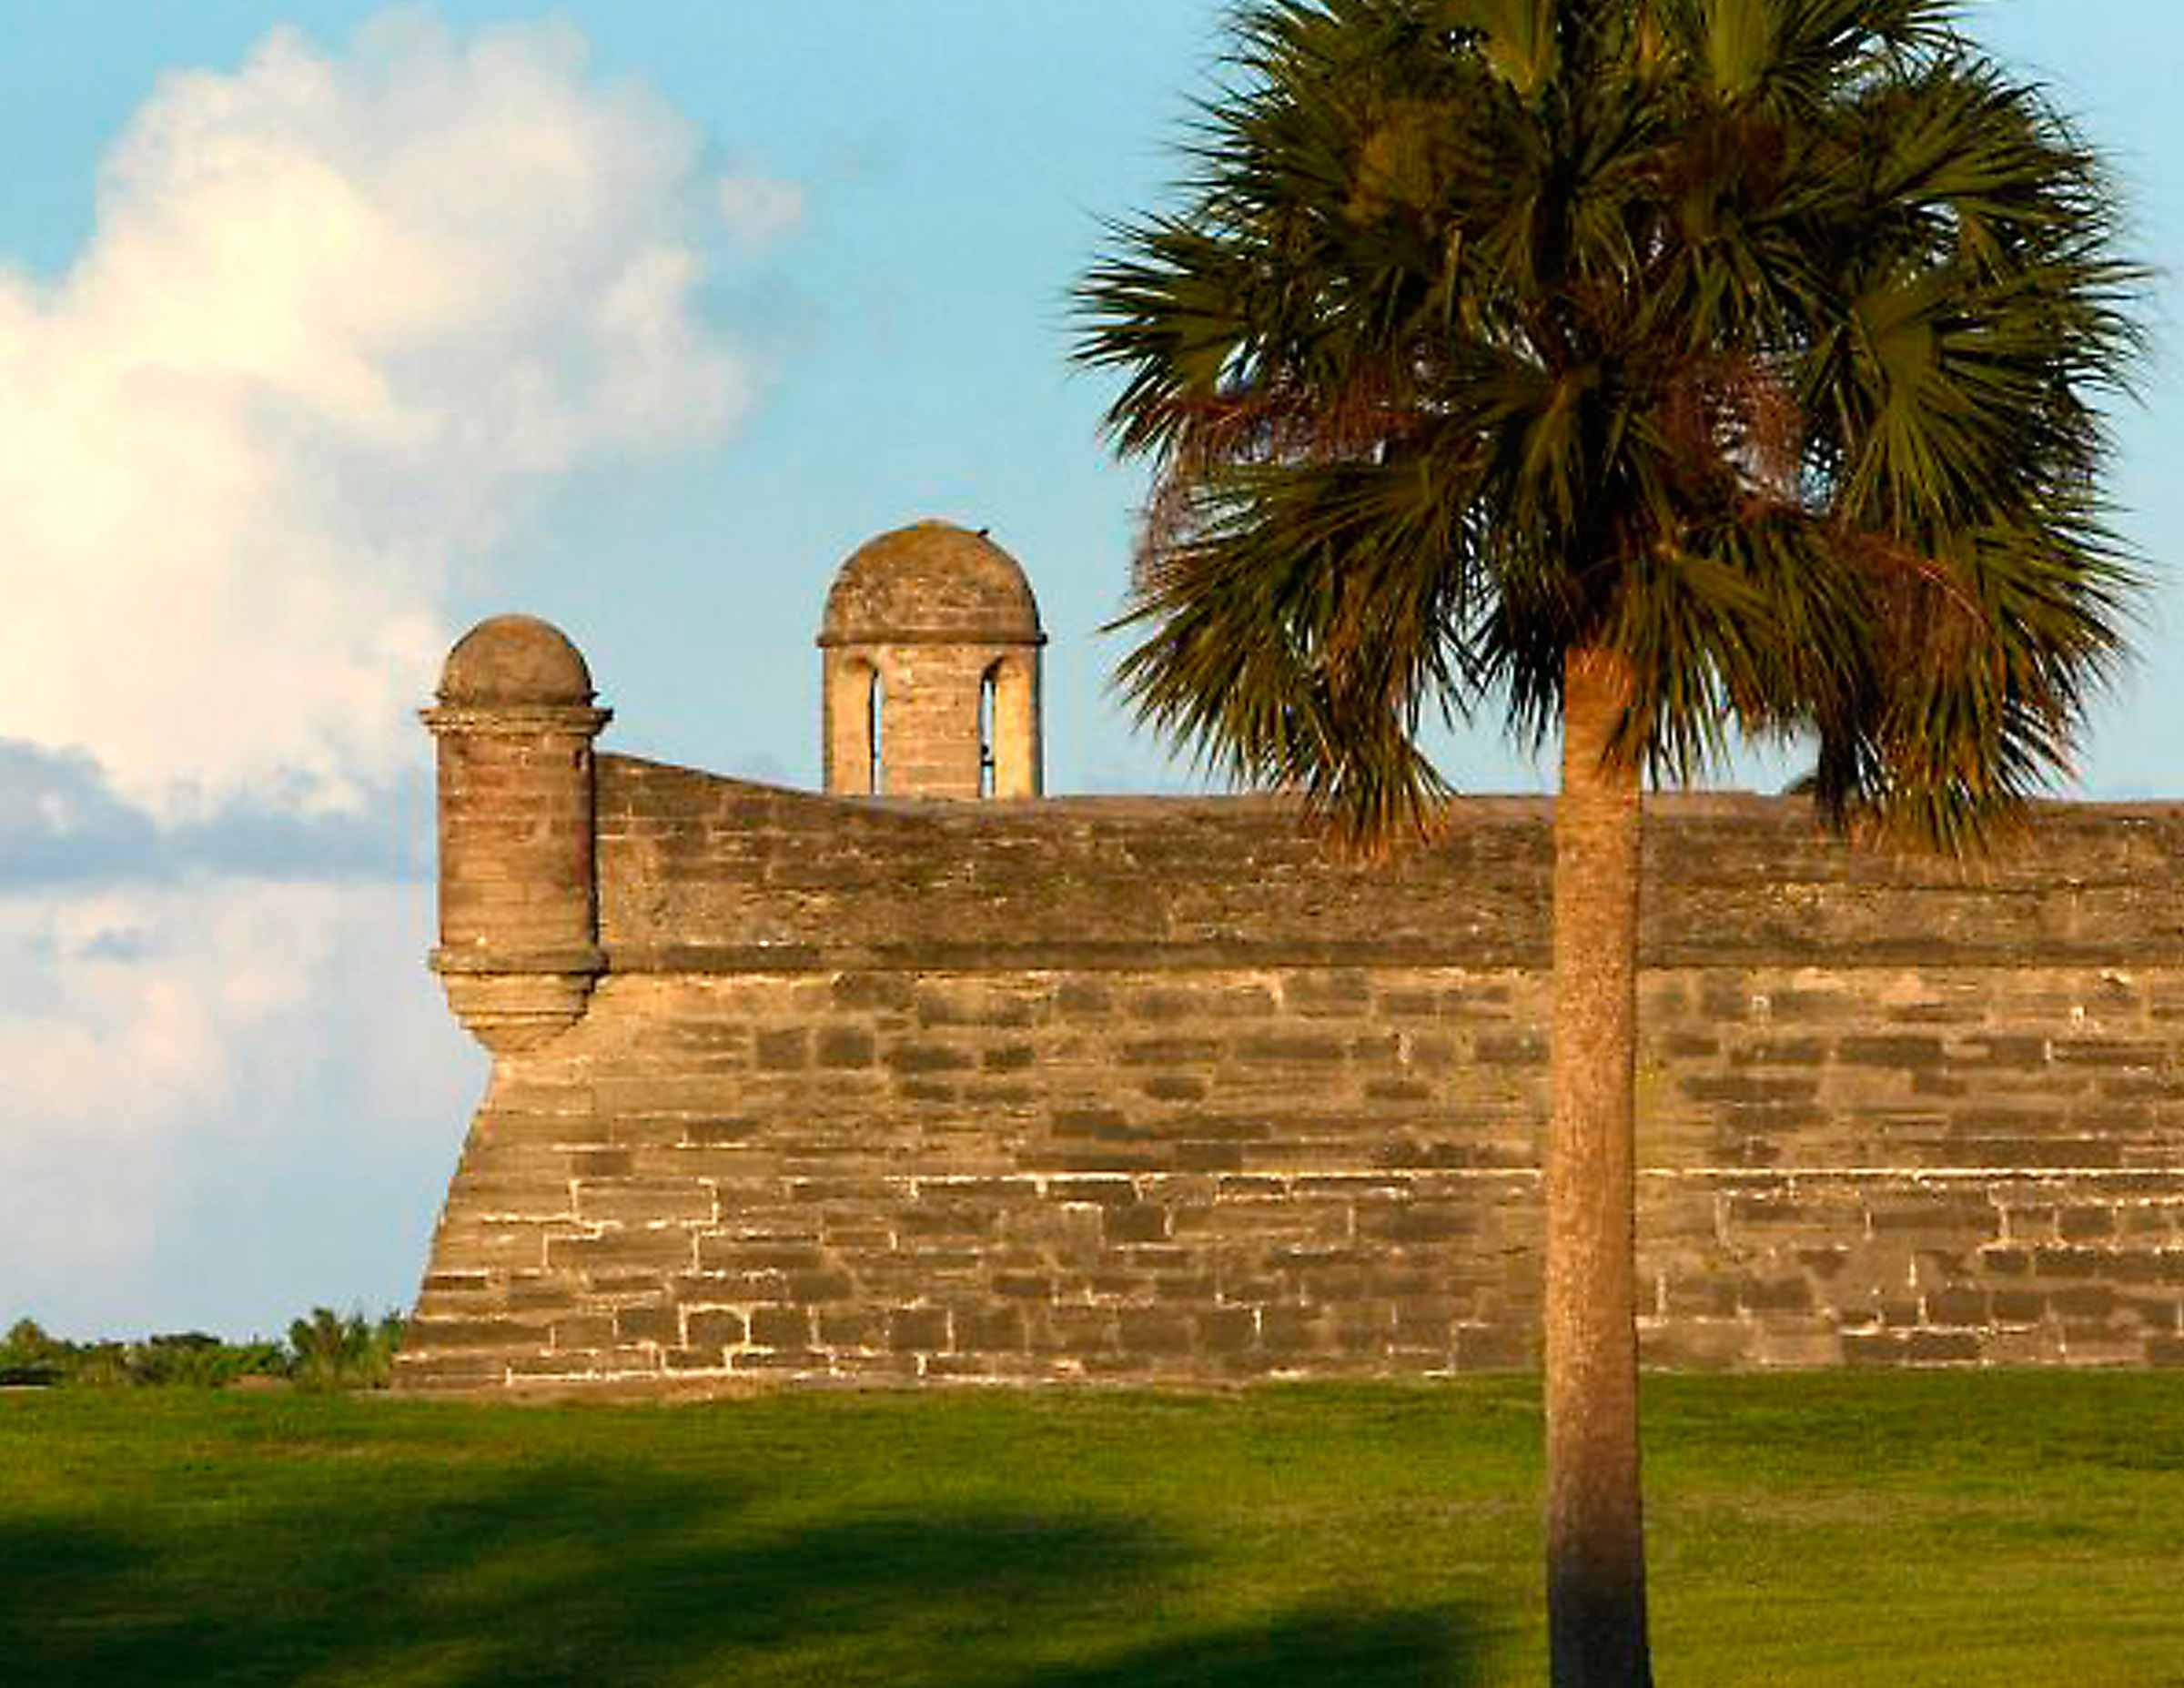 St Augustine Tourism and Sightseeing